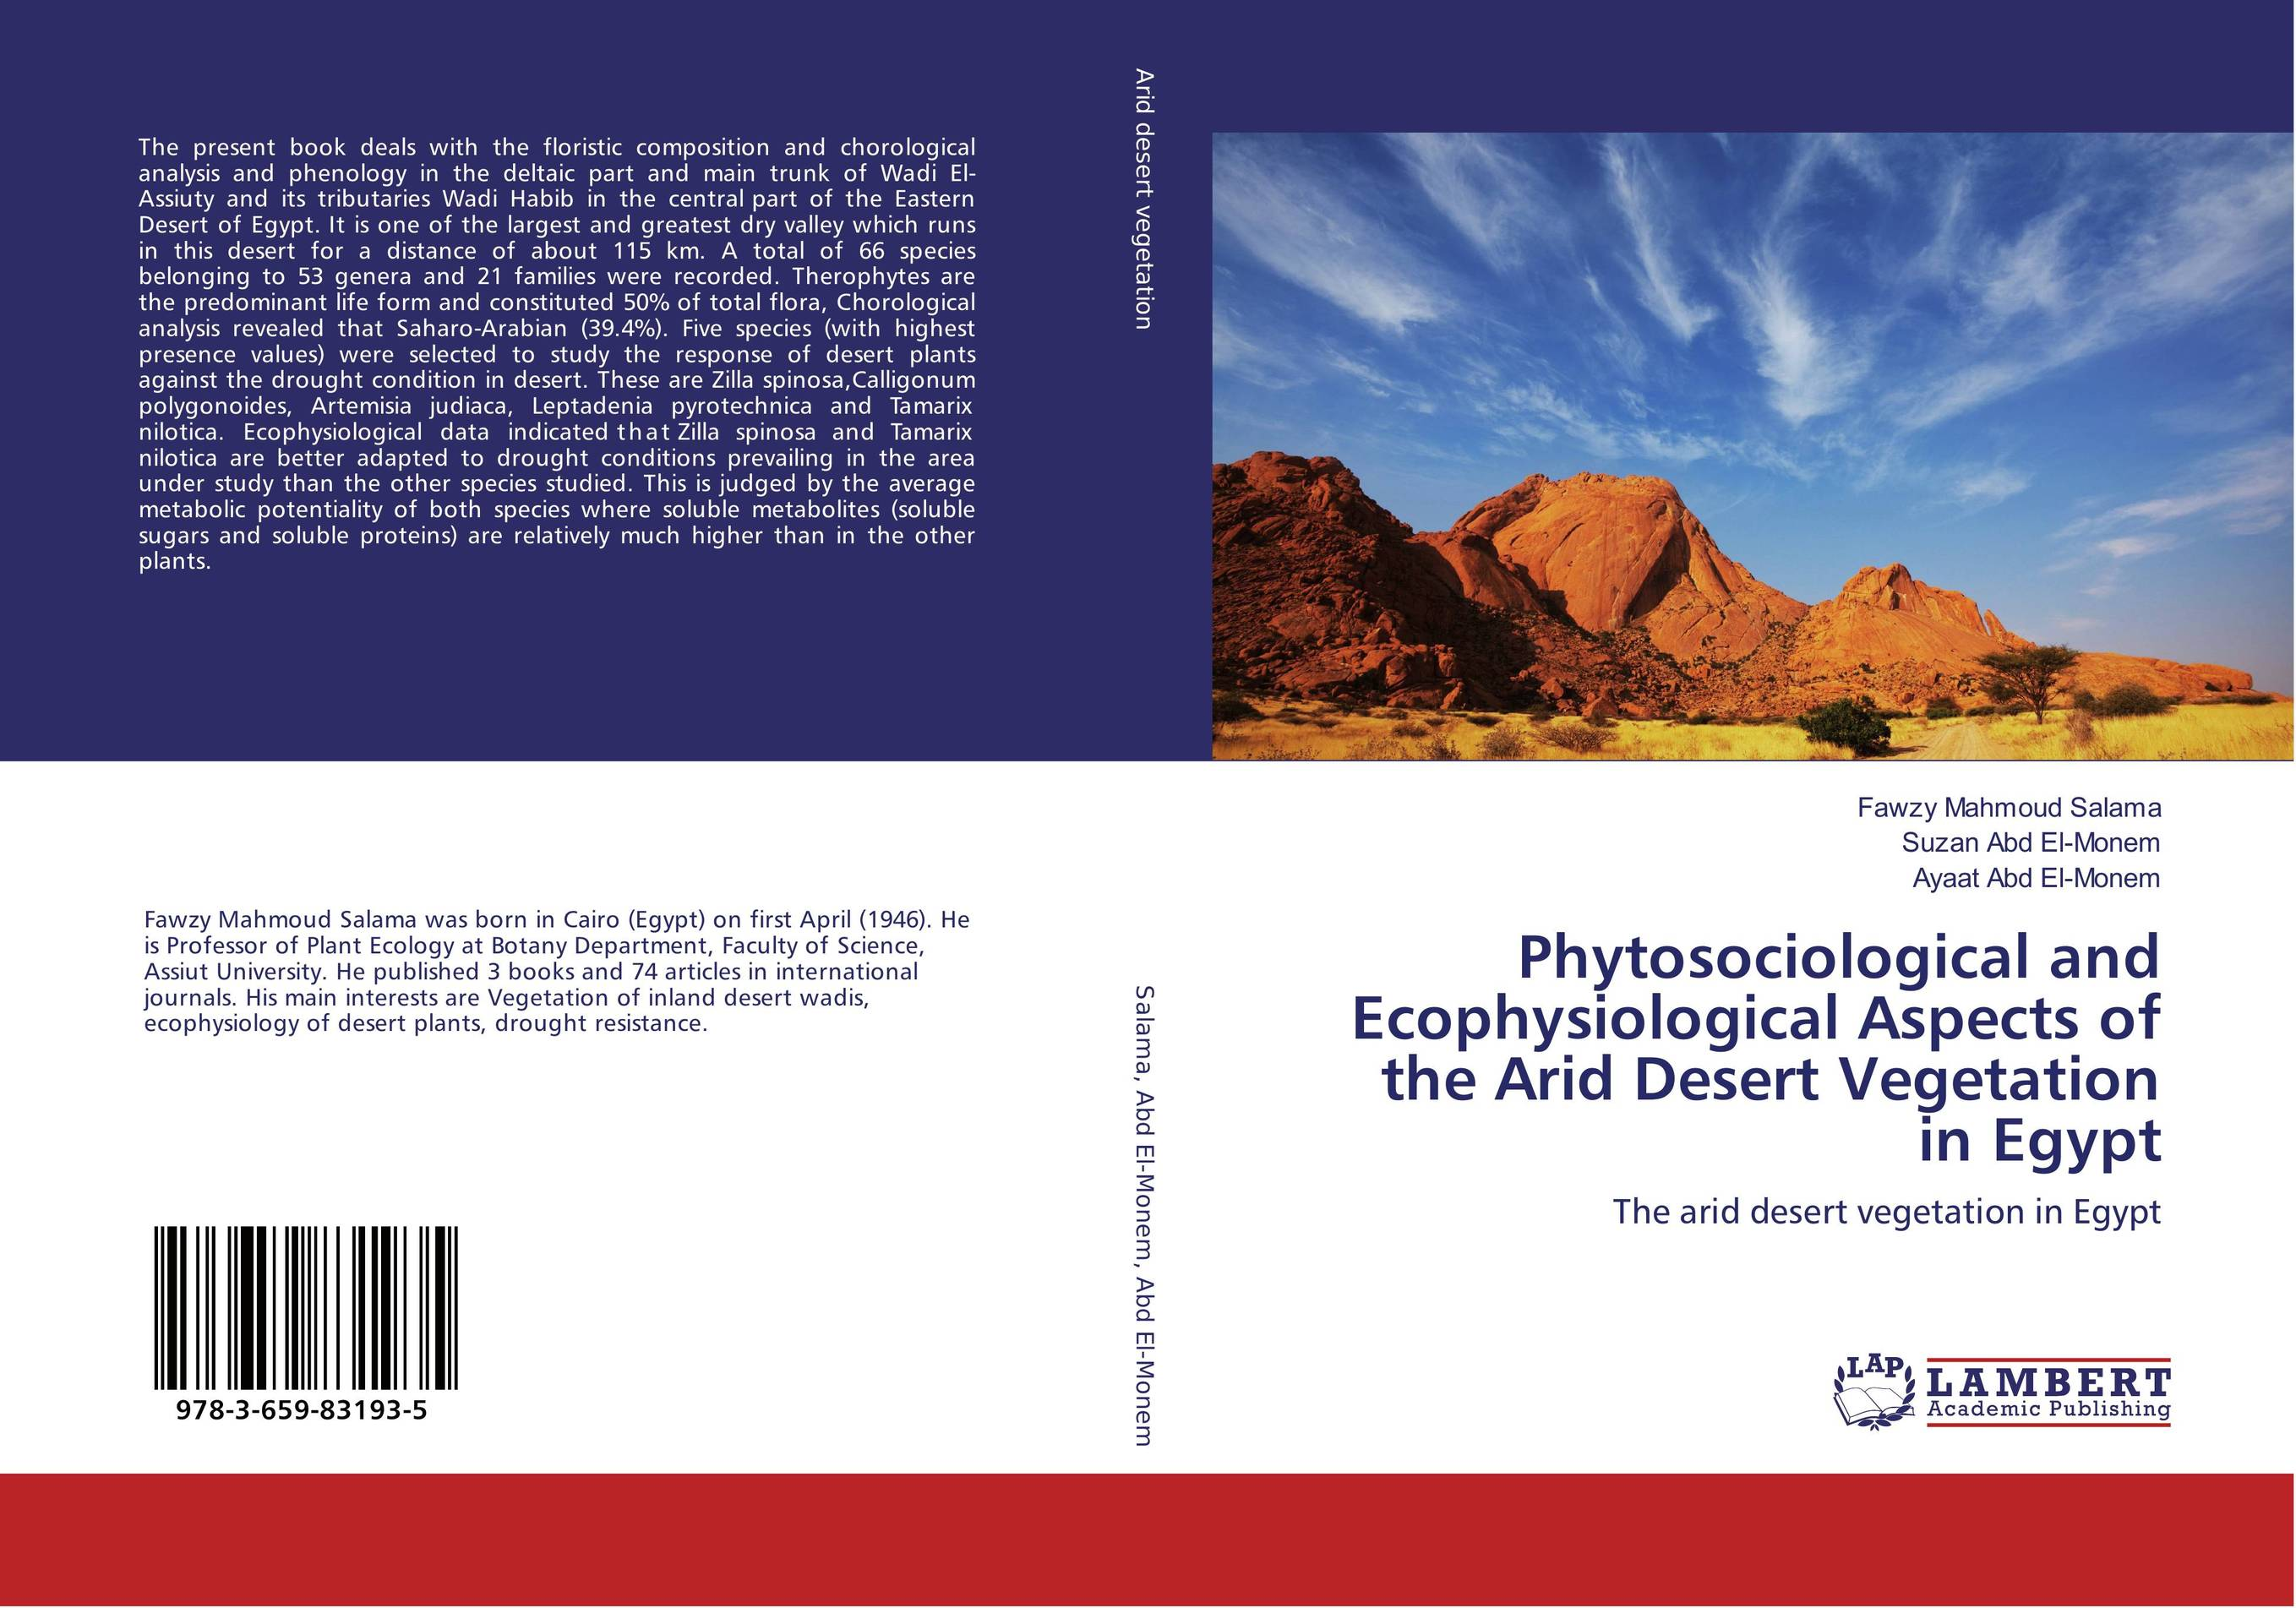 Phytosociological and Ecophysiological Aspects of the Arid Desert Vegetation in Egypt desert and the blade